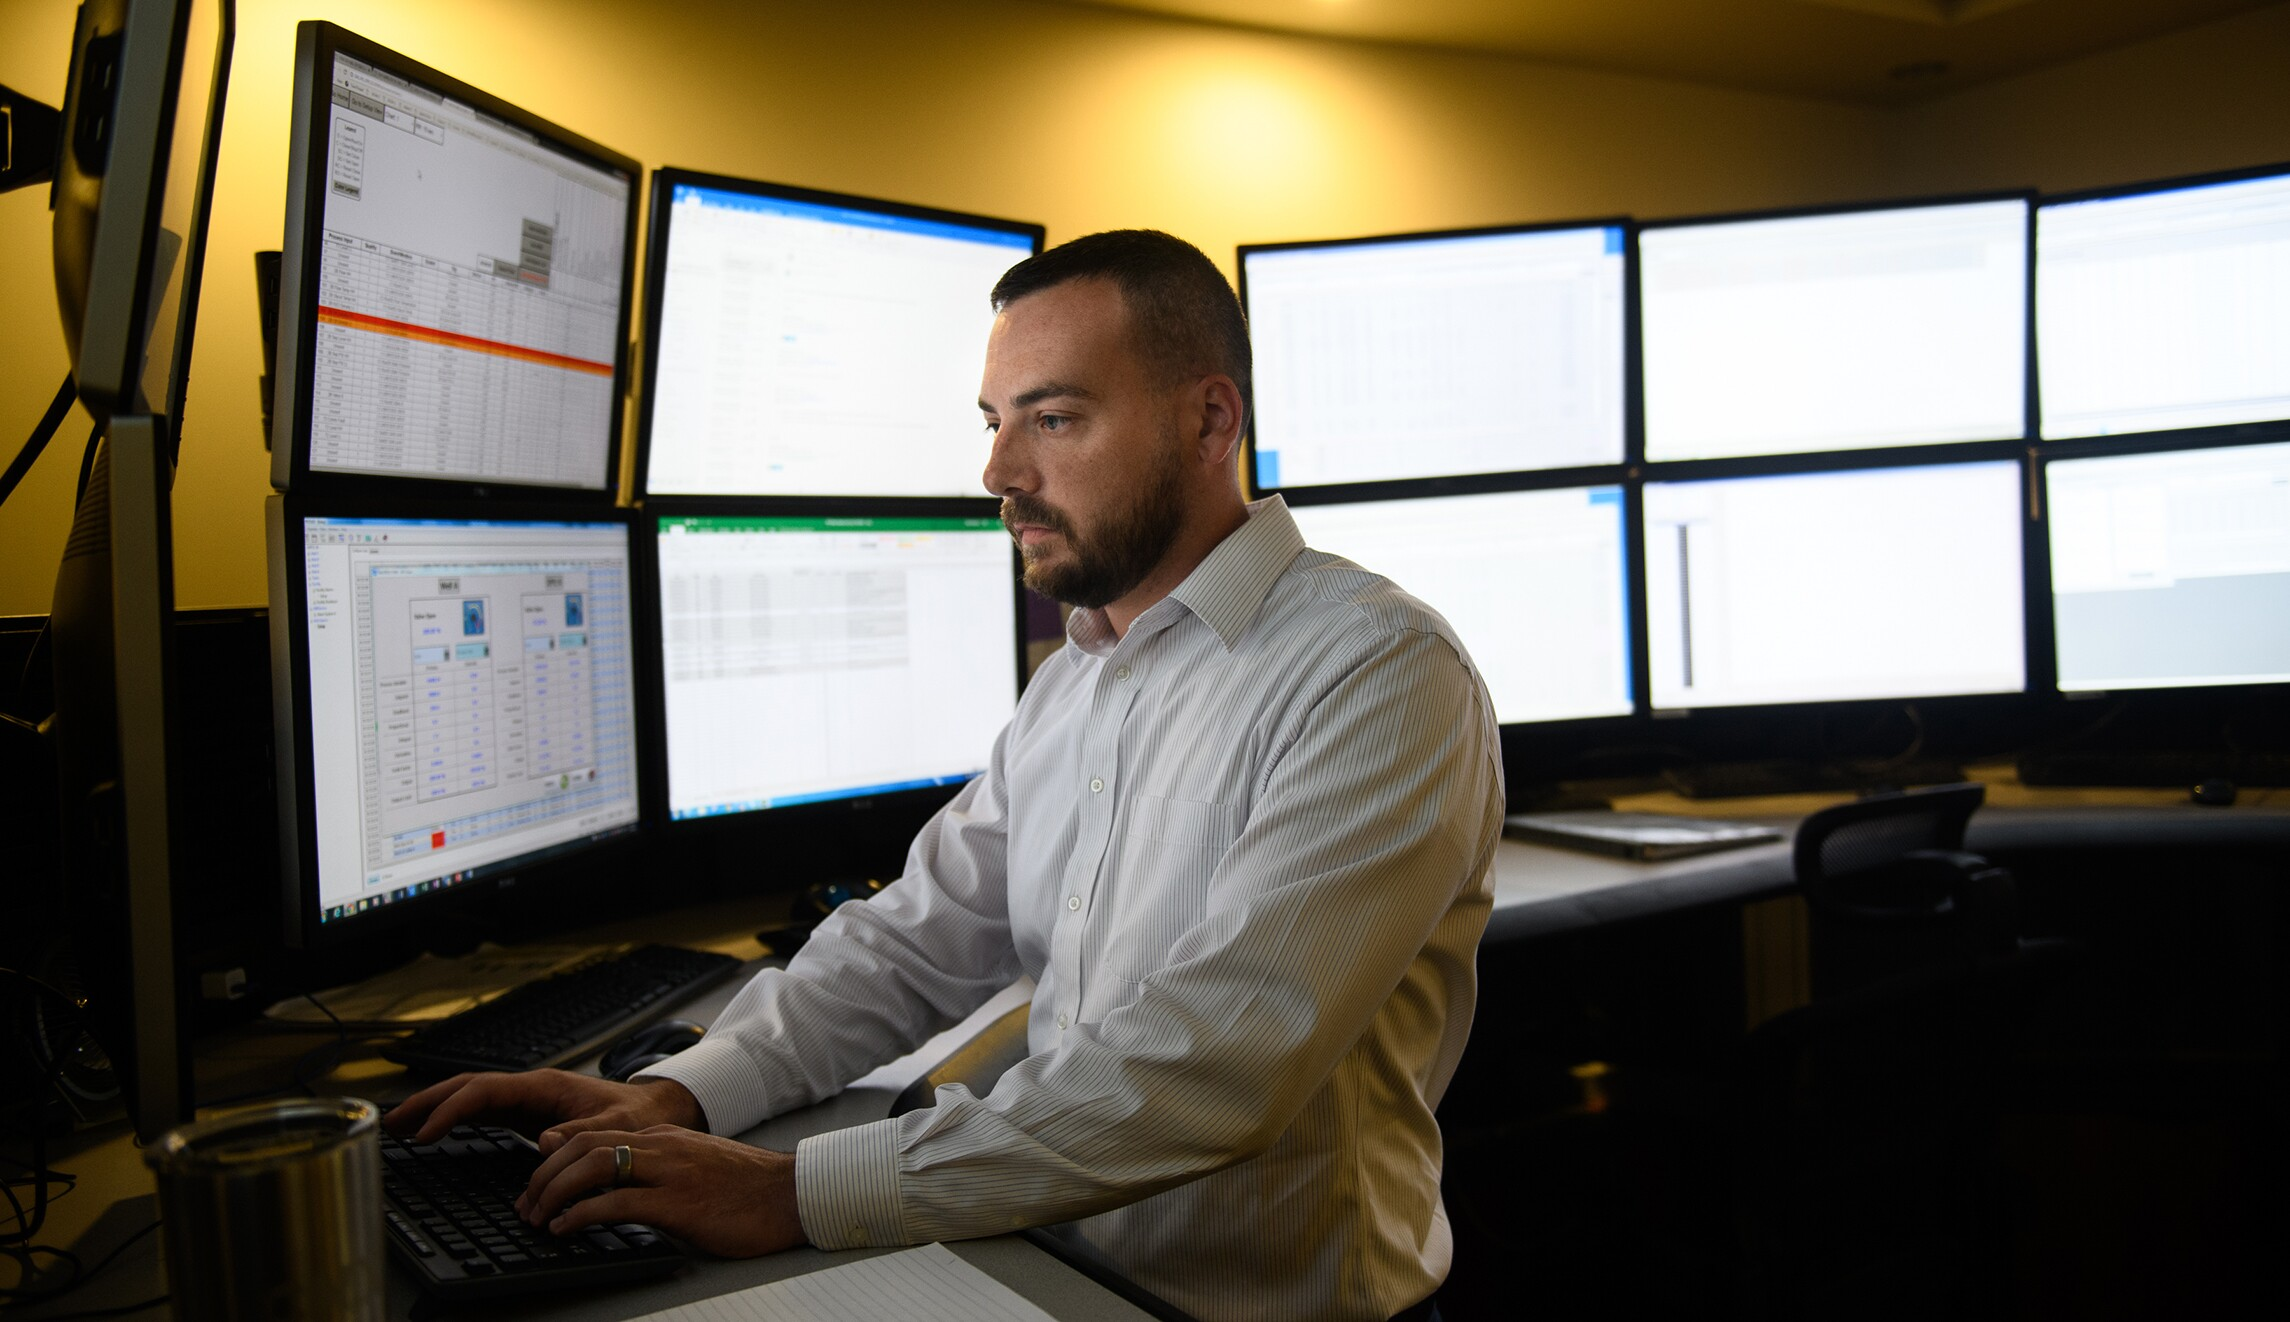 Mike May, 33, of Oakdale, Pa., works in the control room of CNX Resources Corporation on July 30 at their headquarters in Cannonsburg, Pa. The control room is able to monitor and adjust well sites throughout several states.